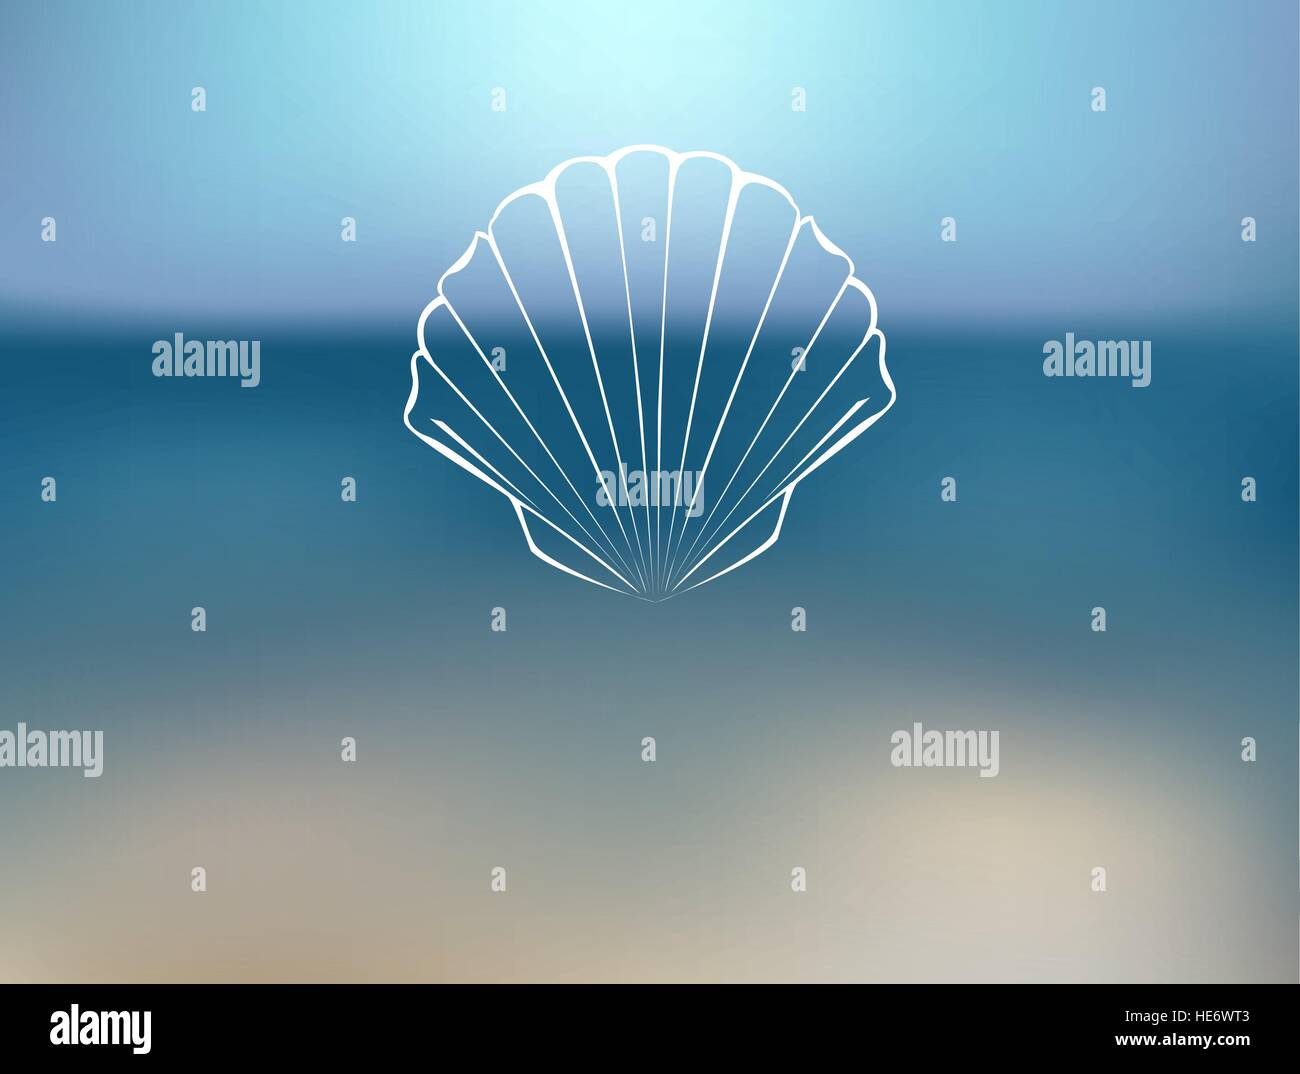 Marine blurred background with contour seashells. - Stock Vector